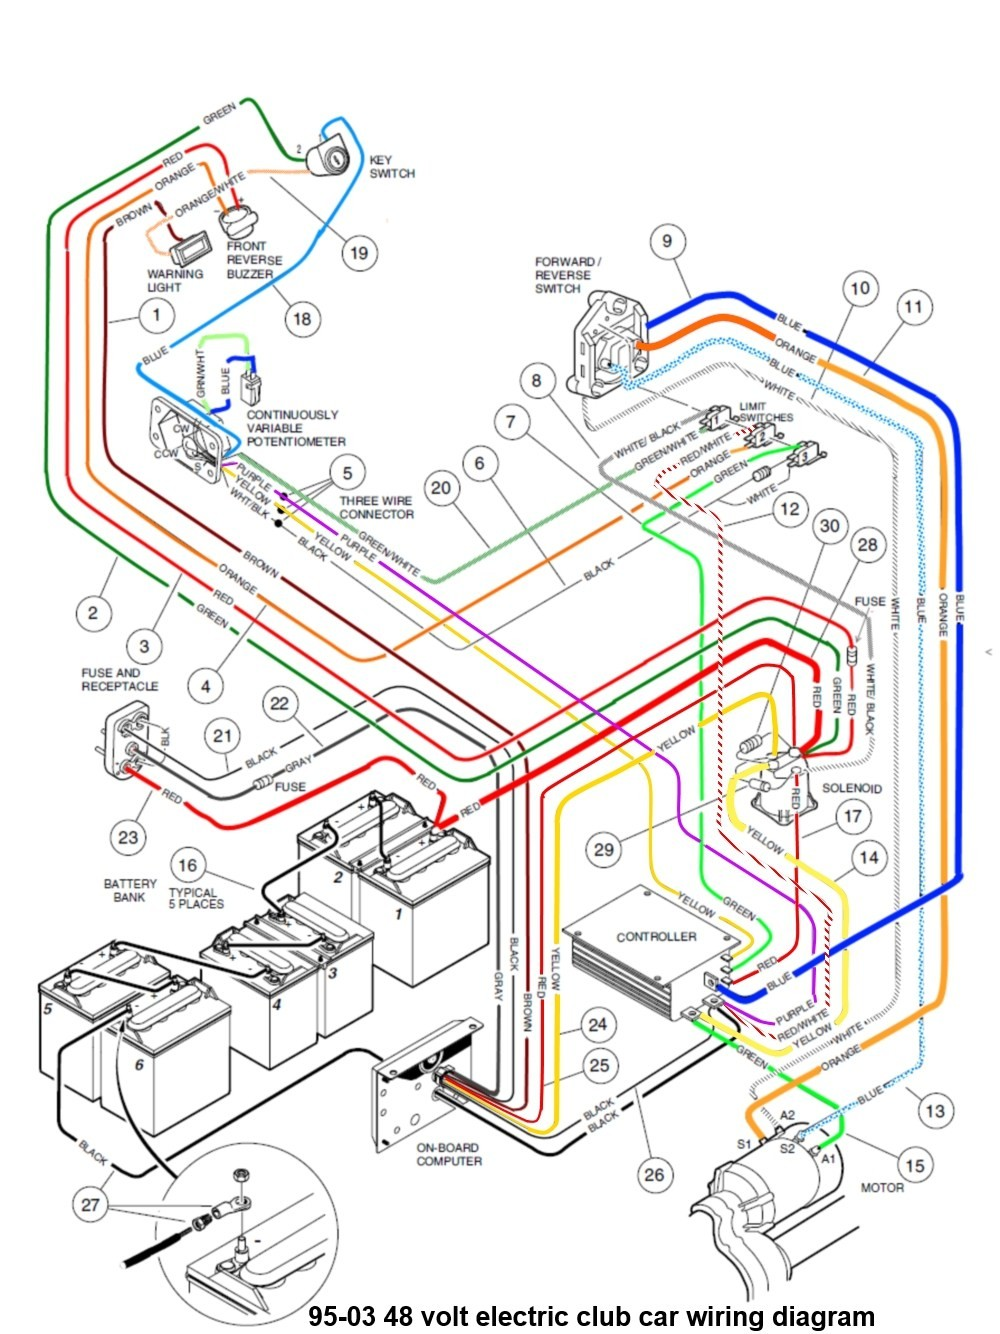 2006 Club Car Iq Wiring Diagram 48 Volt  Wiring 48v